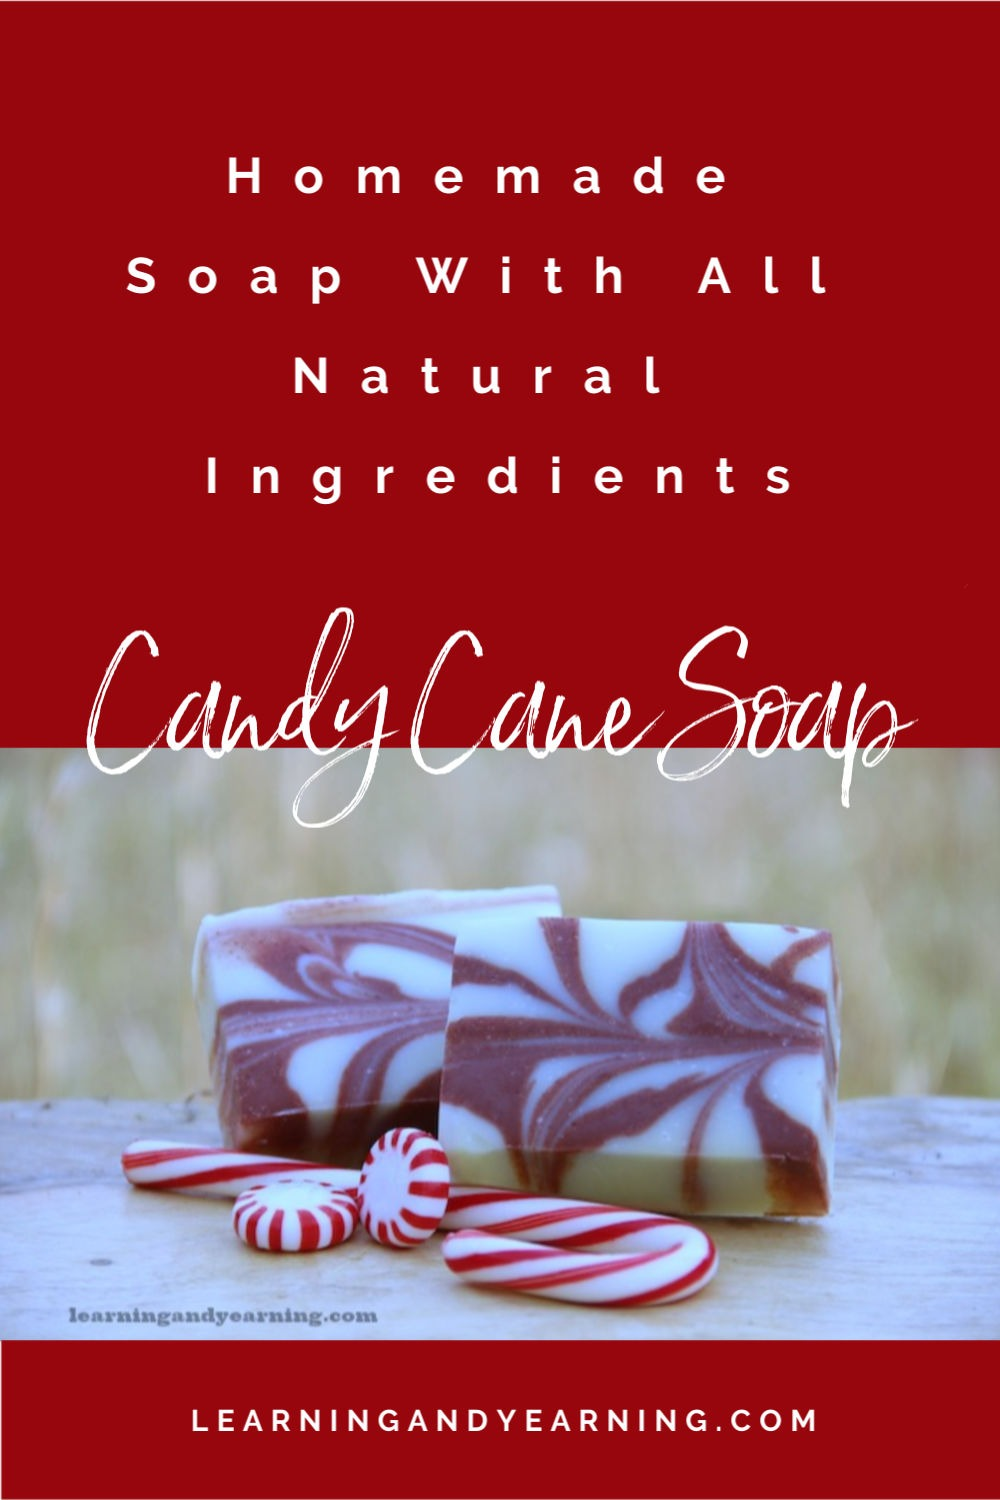 Homemade candy cane soap.